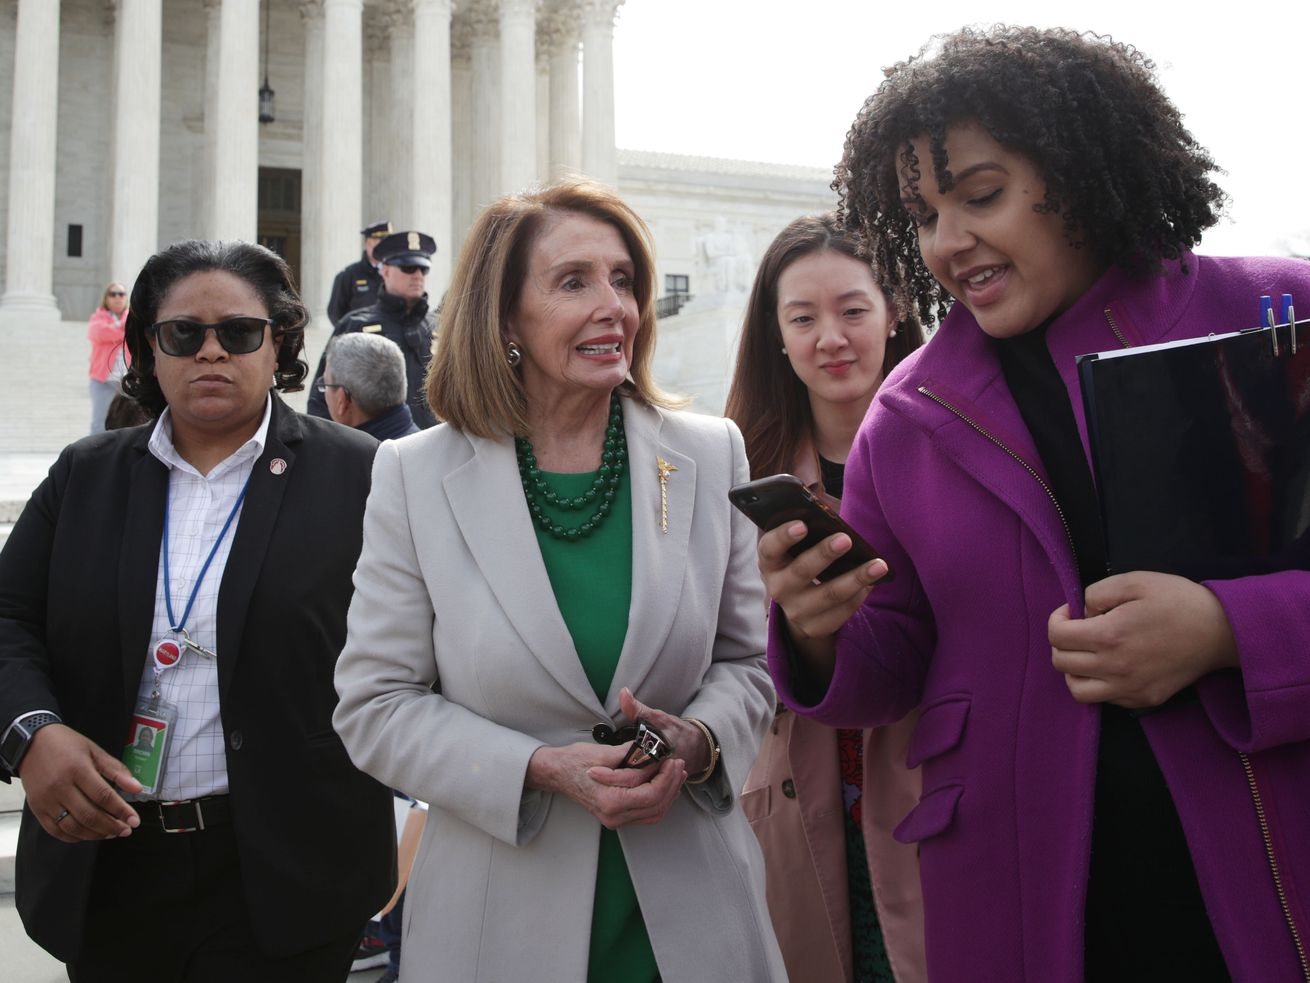 U.S. Speaker of the House Rep. Nancy Pelosi (D-CA) outside the U.S. Supreme Court.